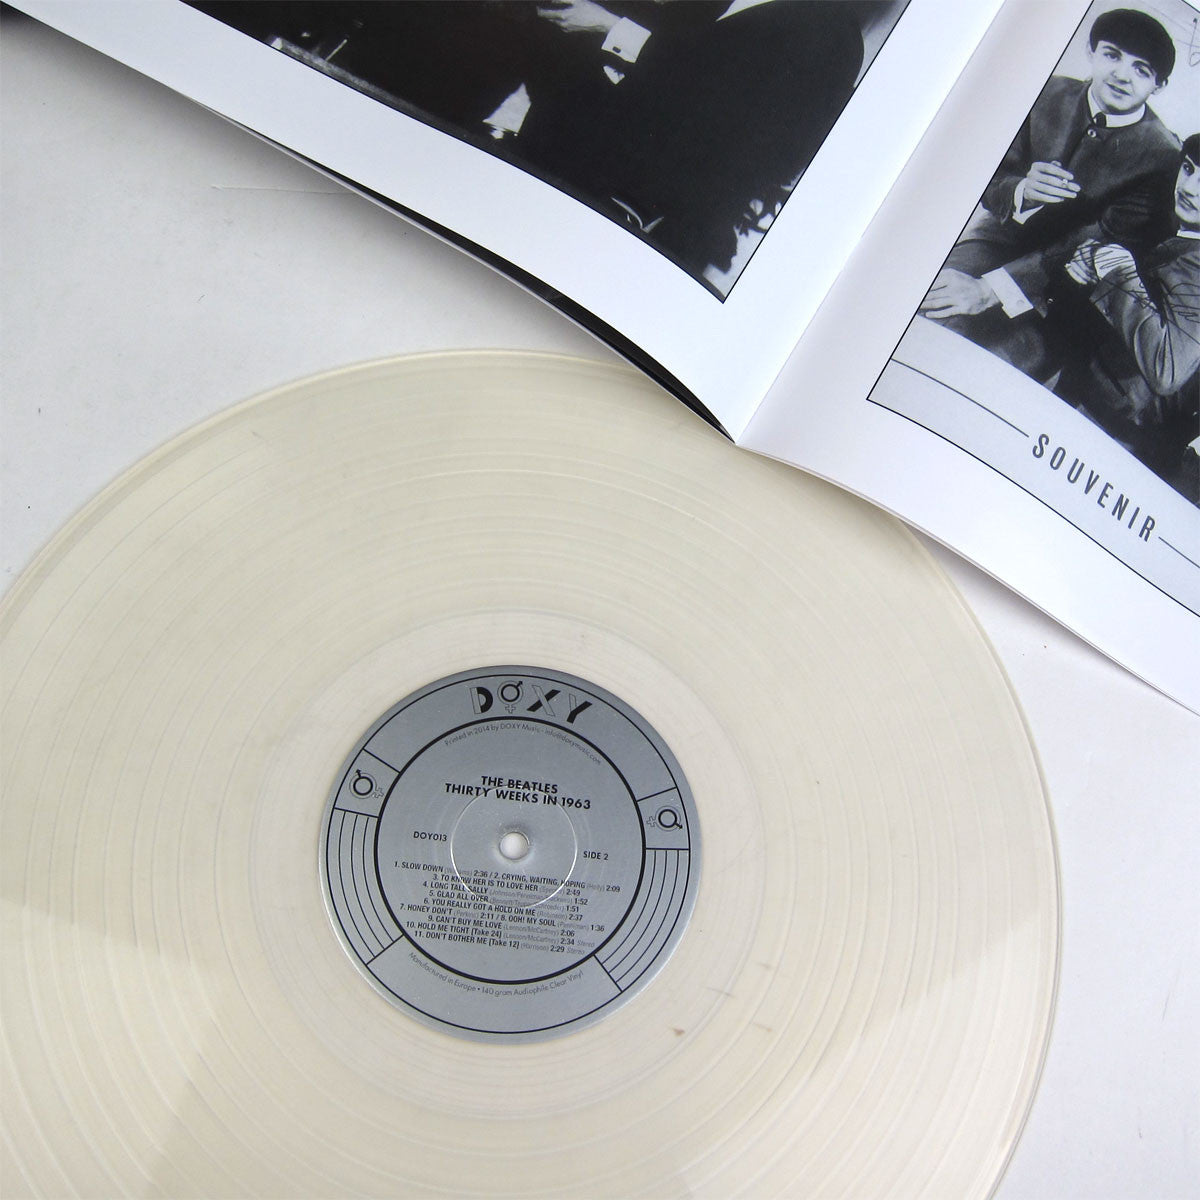 The Beatles: Thirty Weeks in 1963 (Audiophile Clear Vinyl) Vinyl LP Boxset detail